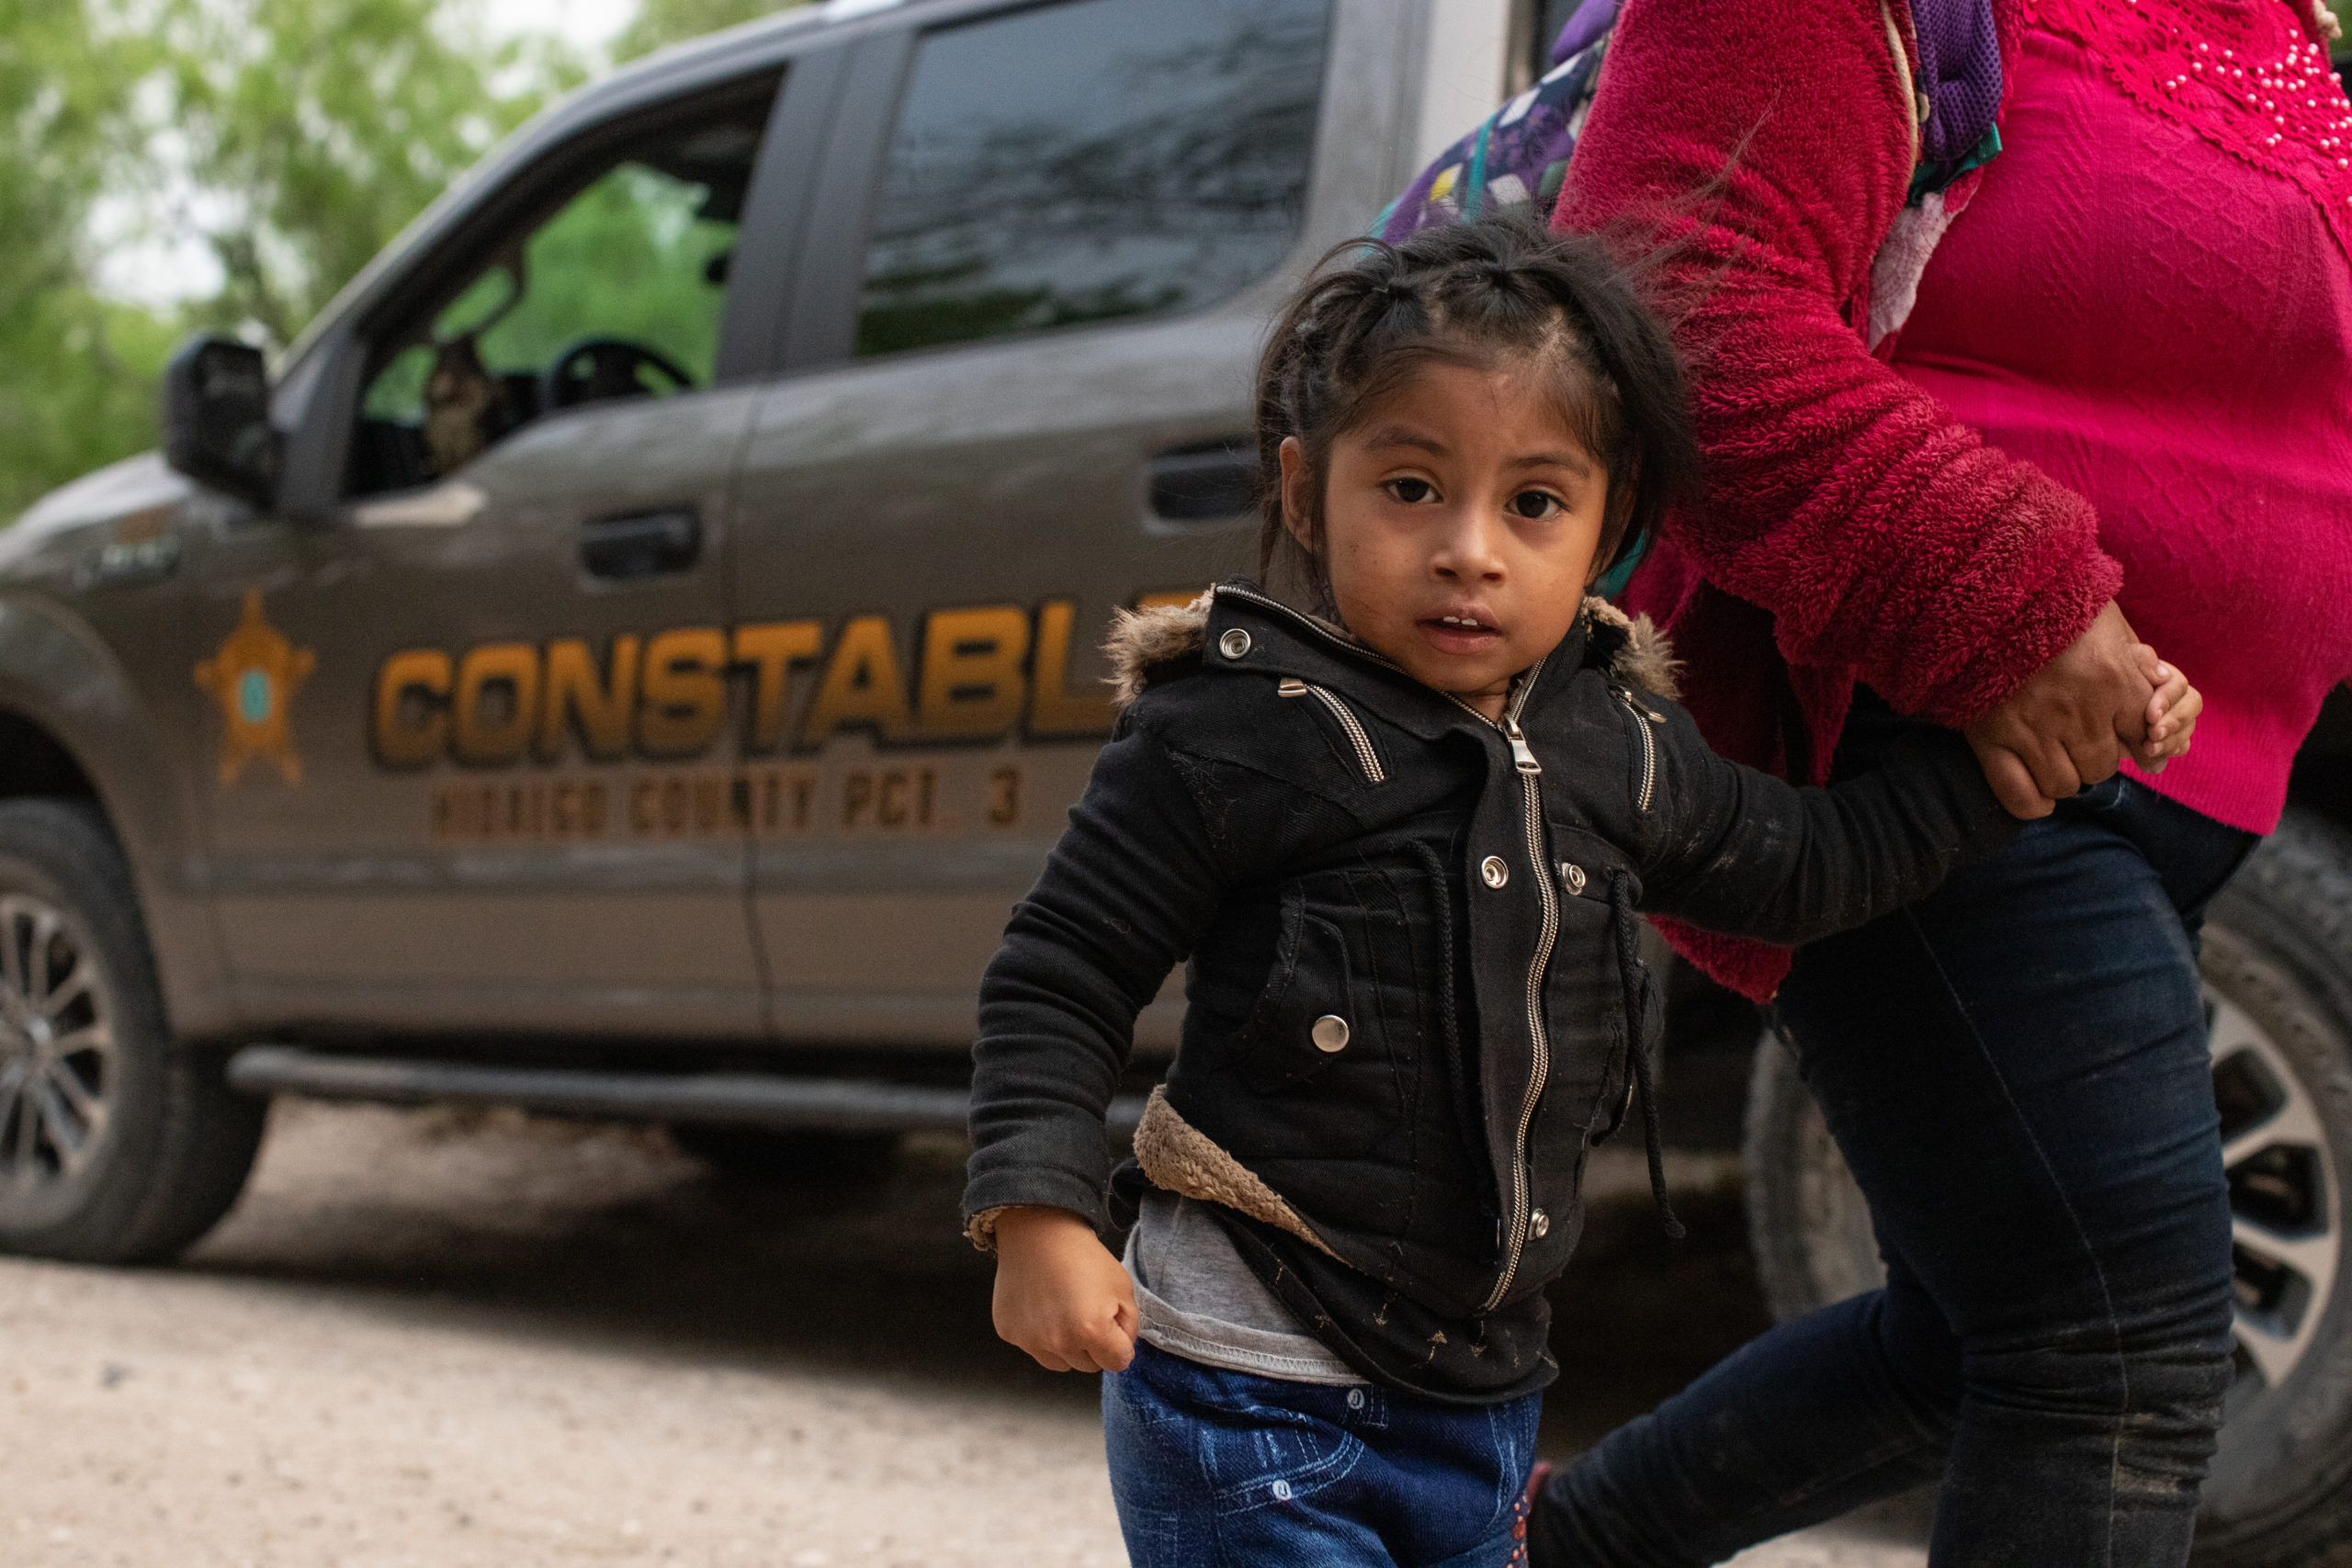 Illegal migrants make their way to a processing facility after they were smuggled into the U.S. and officials with the Hidalgo County Constable's office gathered biometrical data from them before releasing them in Rincon Village near McAllen, Texas, on March 24, 2021. (Kaylee Greenlee. - Daily Caller News Foundation)